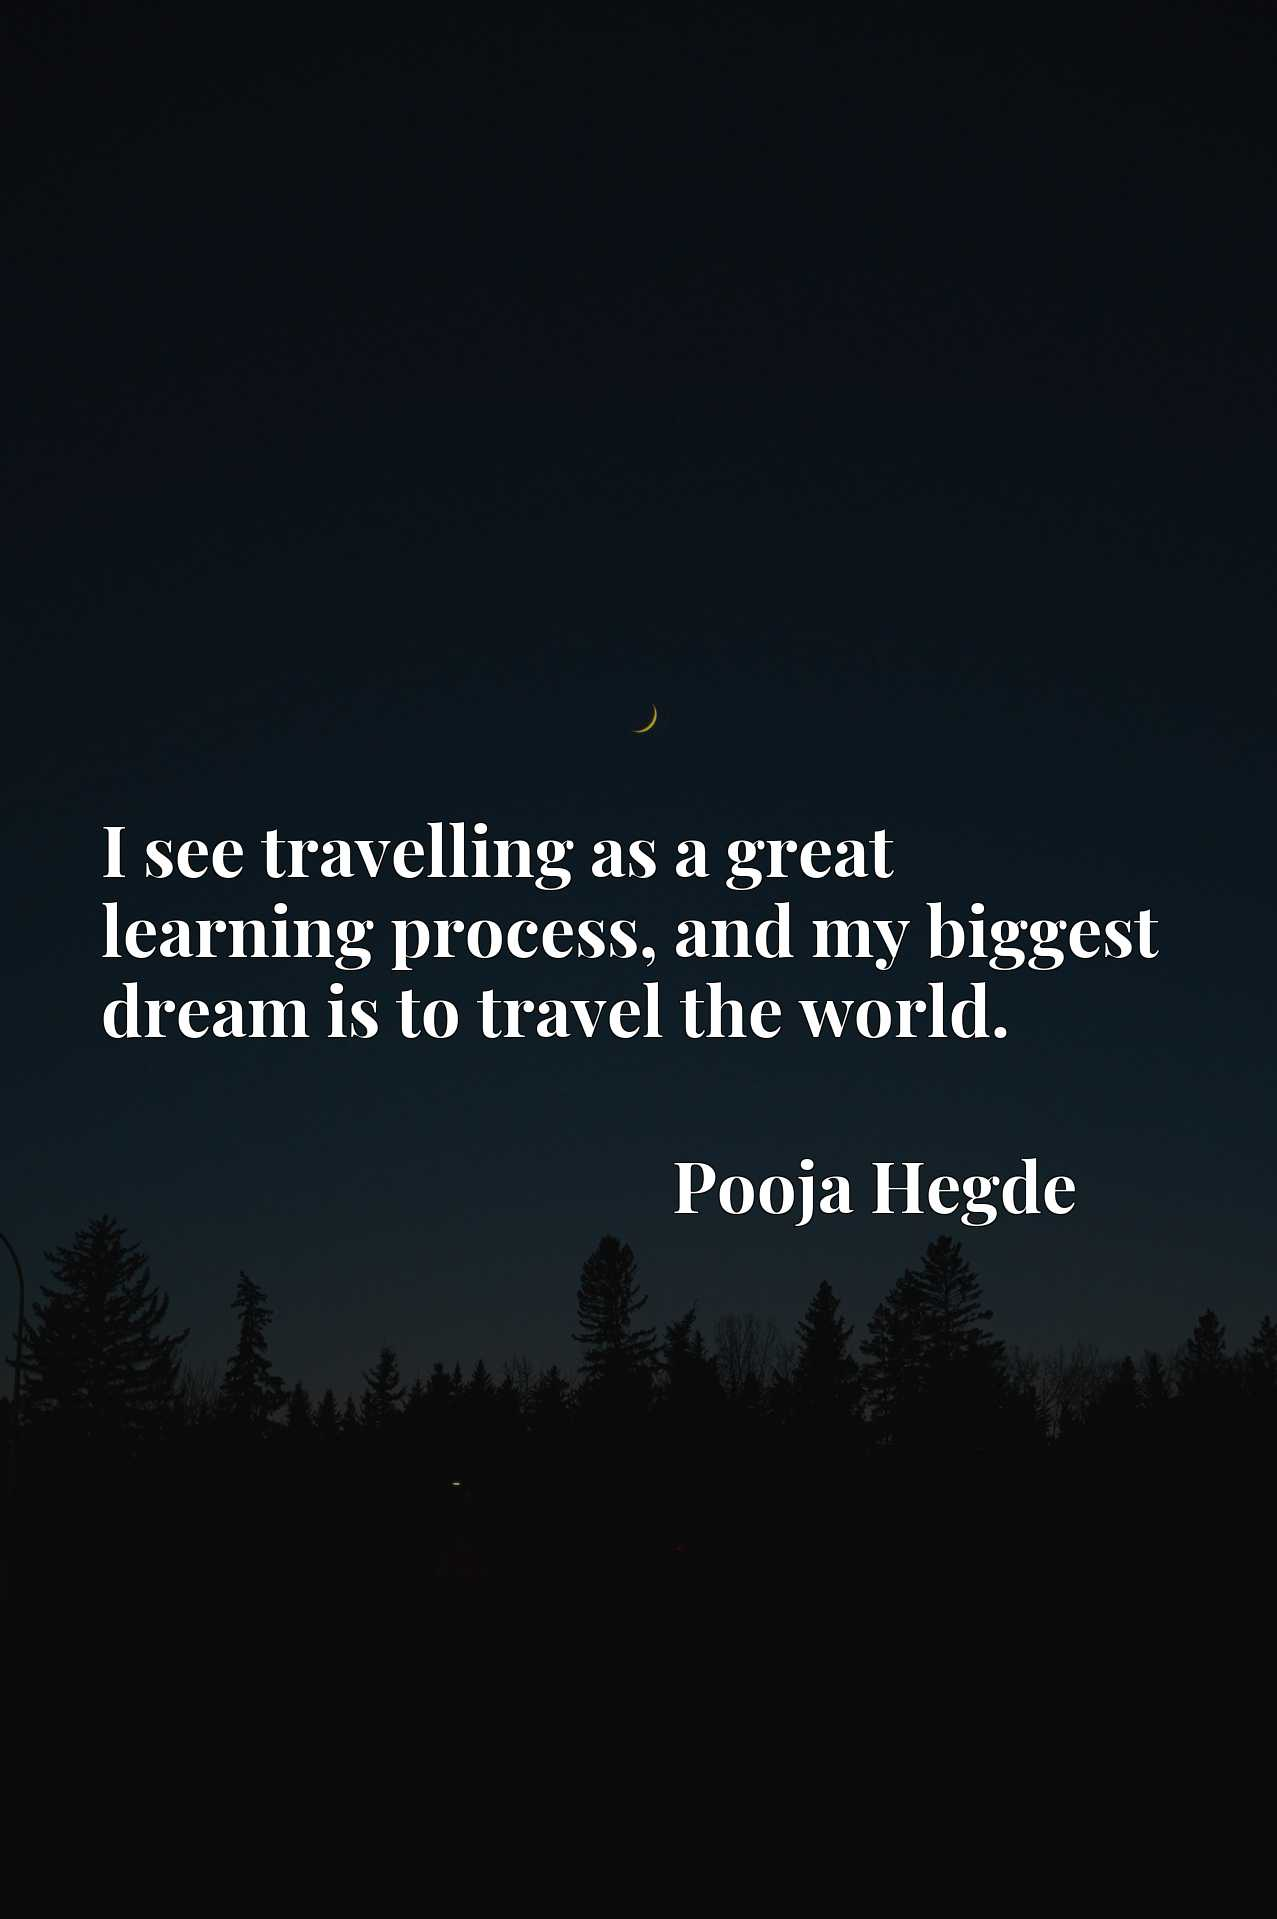 I see travelling as a great learning process, and my biggest dream is to travel the world.